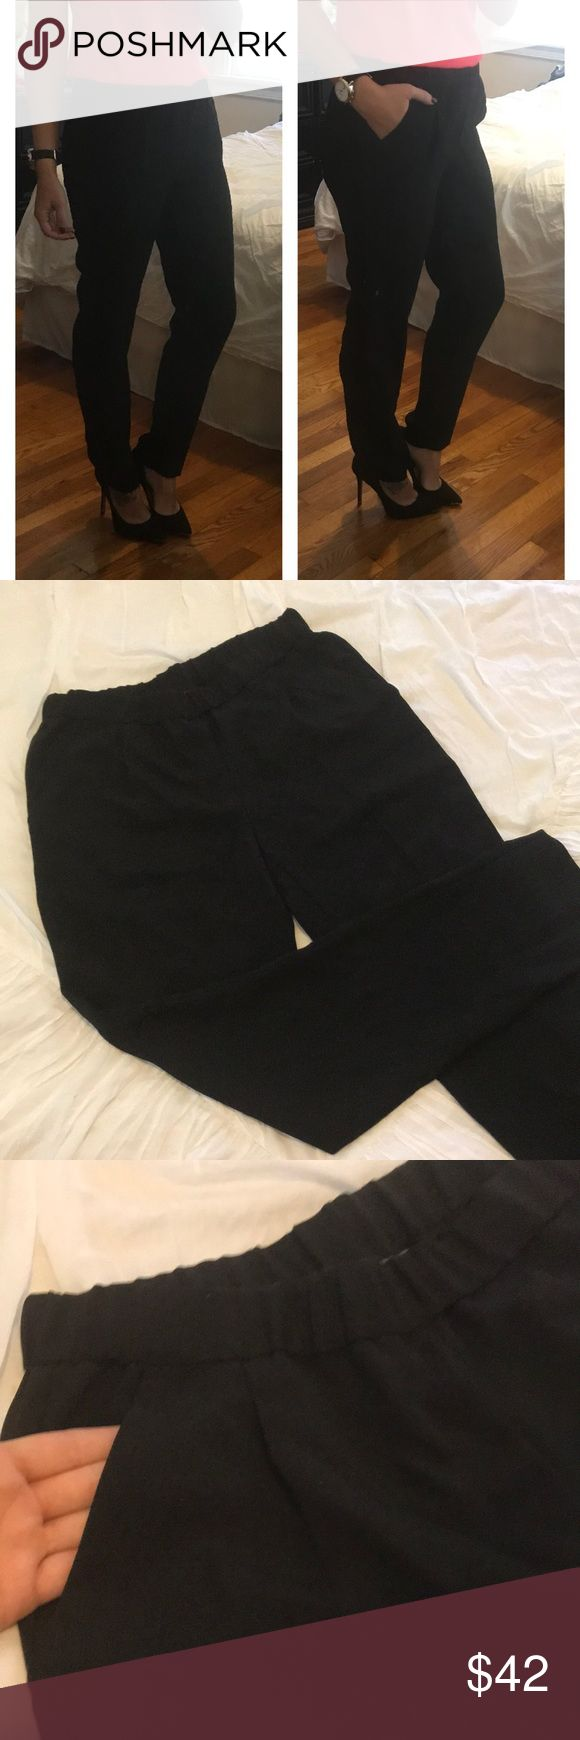 Vince Camuto Trouser Pants! NWOT! Stretch Waist with POCKETS ladies 😍 Stay fashionable and comfortable at the same time with these black Vince Camuto tapered trousers!   Runs big for comfort..Can fit up to size 4/6. Waist band is 14 inches laying flat (super stretchy). 10 inch rise. 29 inch inseam. Vince Camuto Pants Trousers